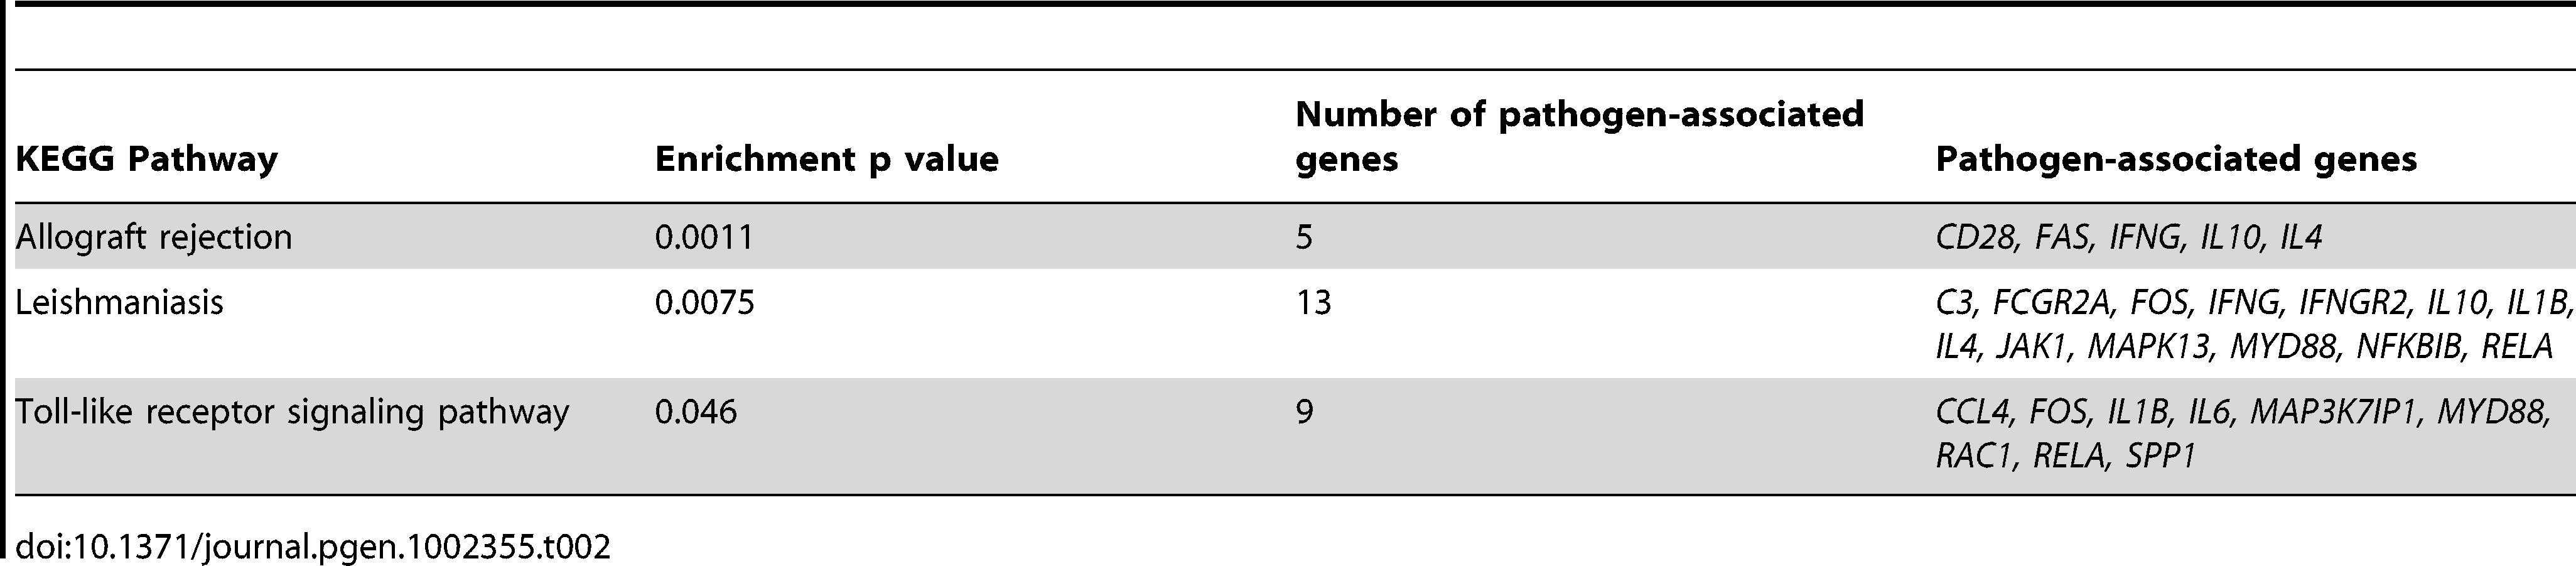 pathways enriched with genes which correlated with pathogen diversity.